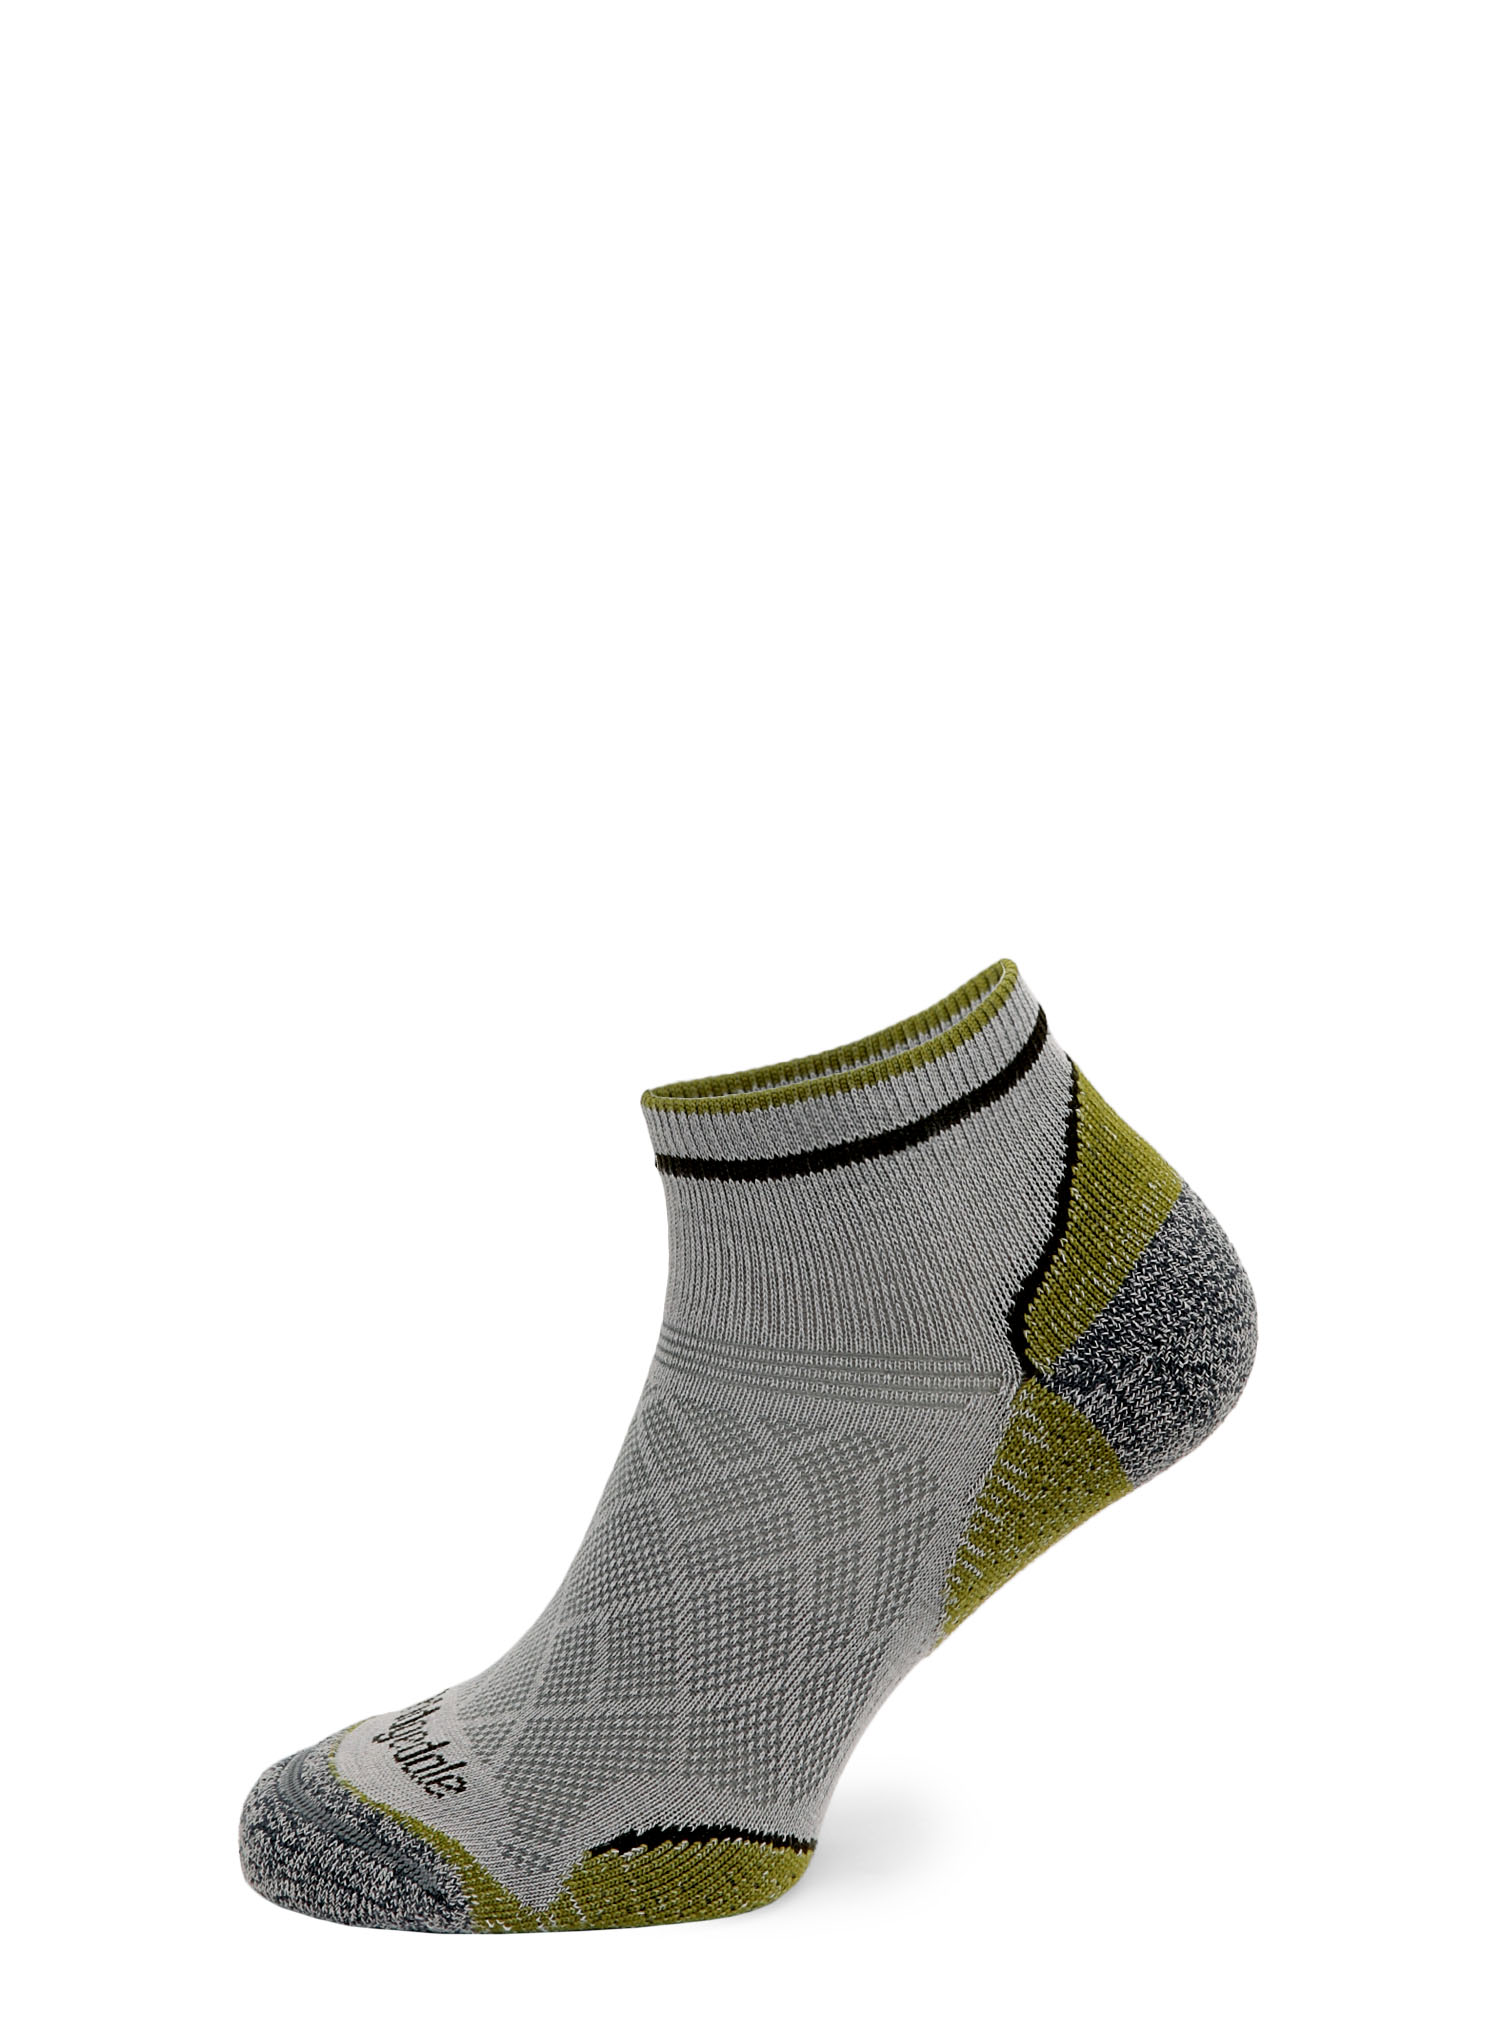 Skarpetki Bridgedale Hike Ultra Lt T2 Coolmax P Low - grey/green - zdjęcie nr. 5